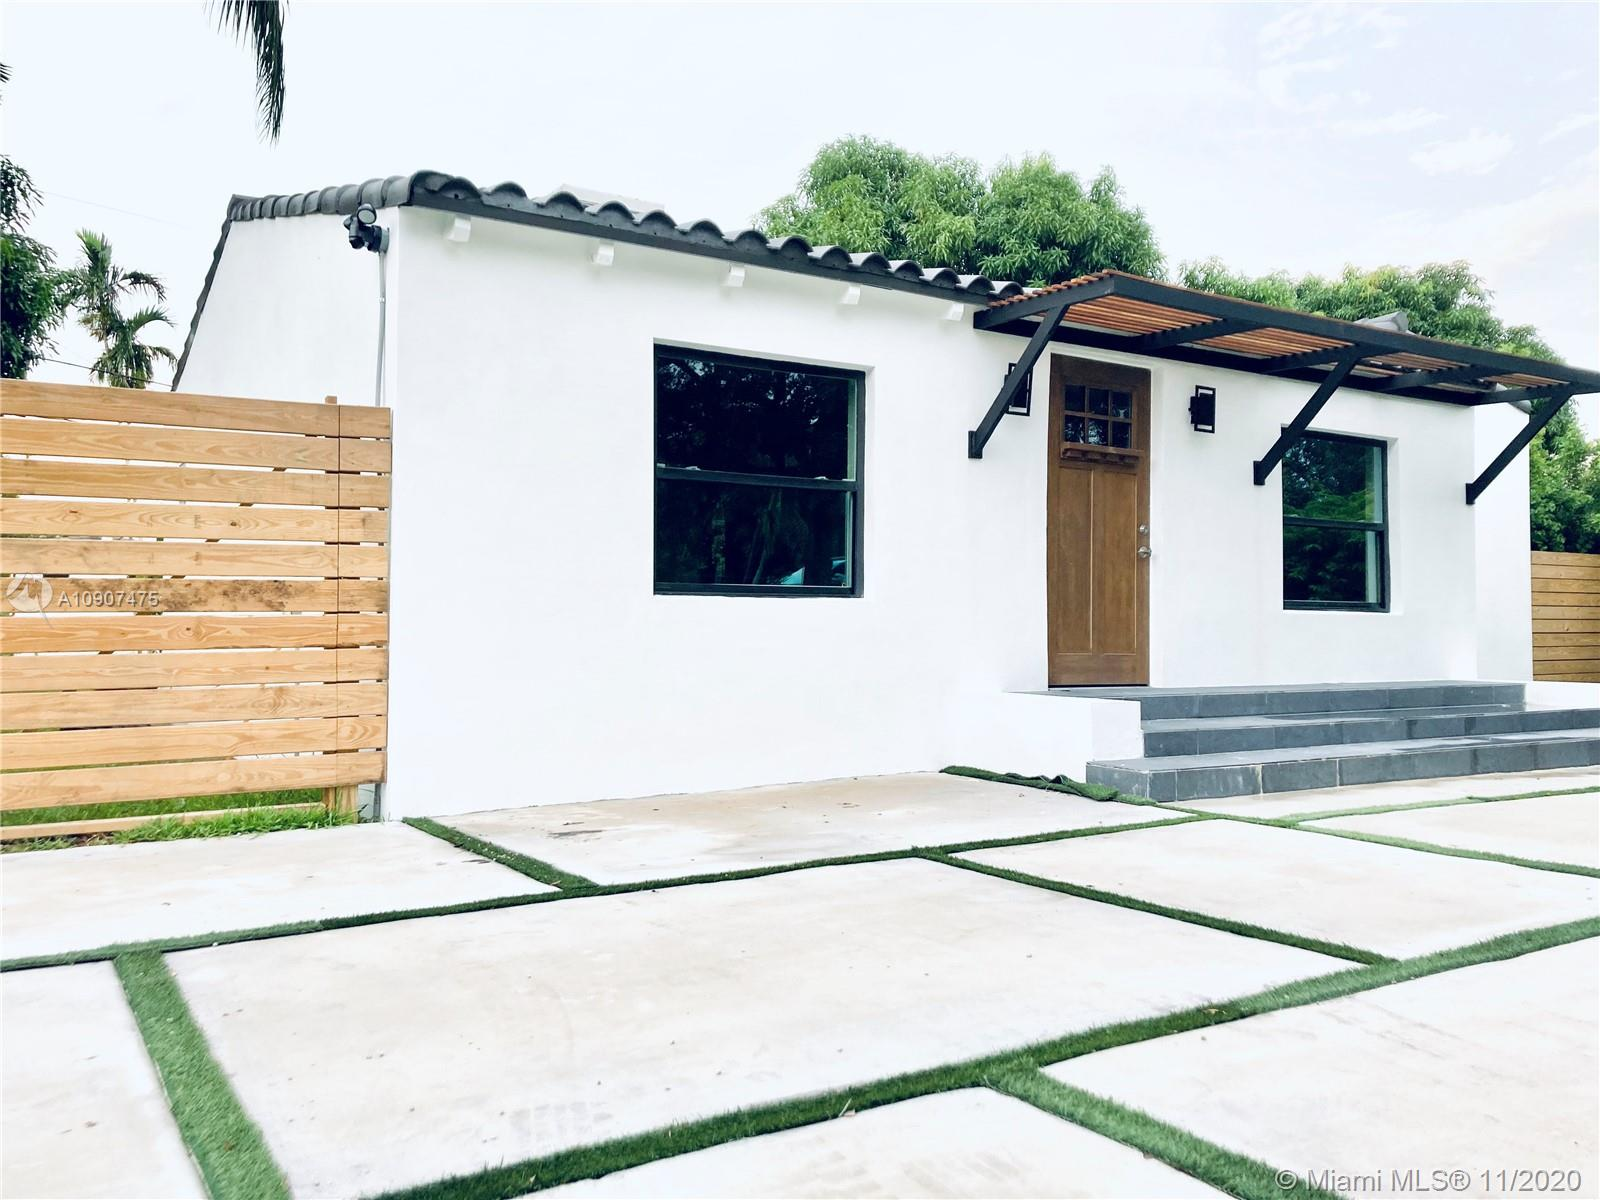 Location!!! Coral Gables! Miracle Miles! Shops, Restaurants, Newly renovated, Contemporary redesigned, 3/2 modern home on a great lot.